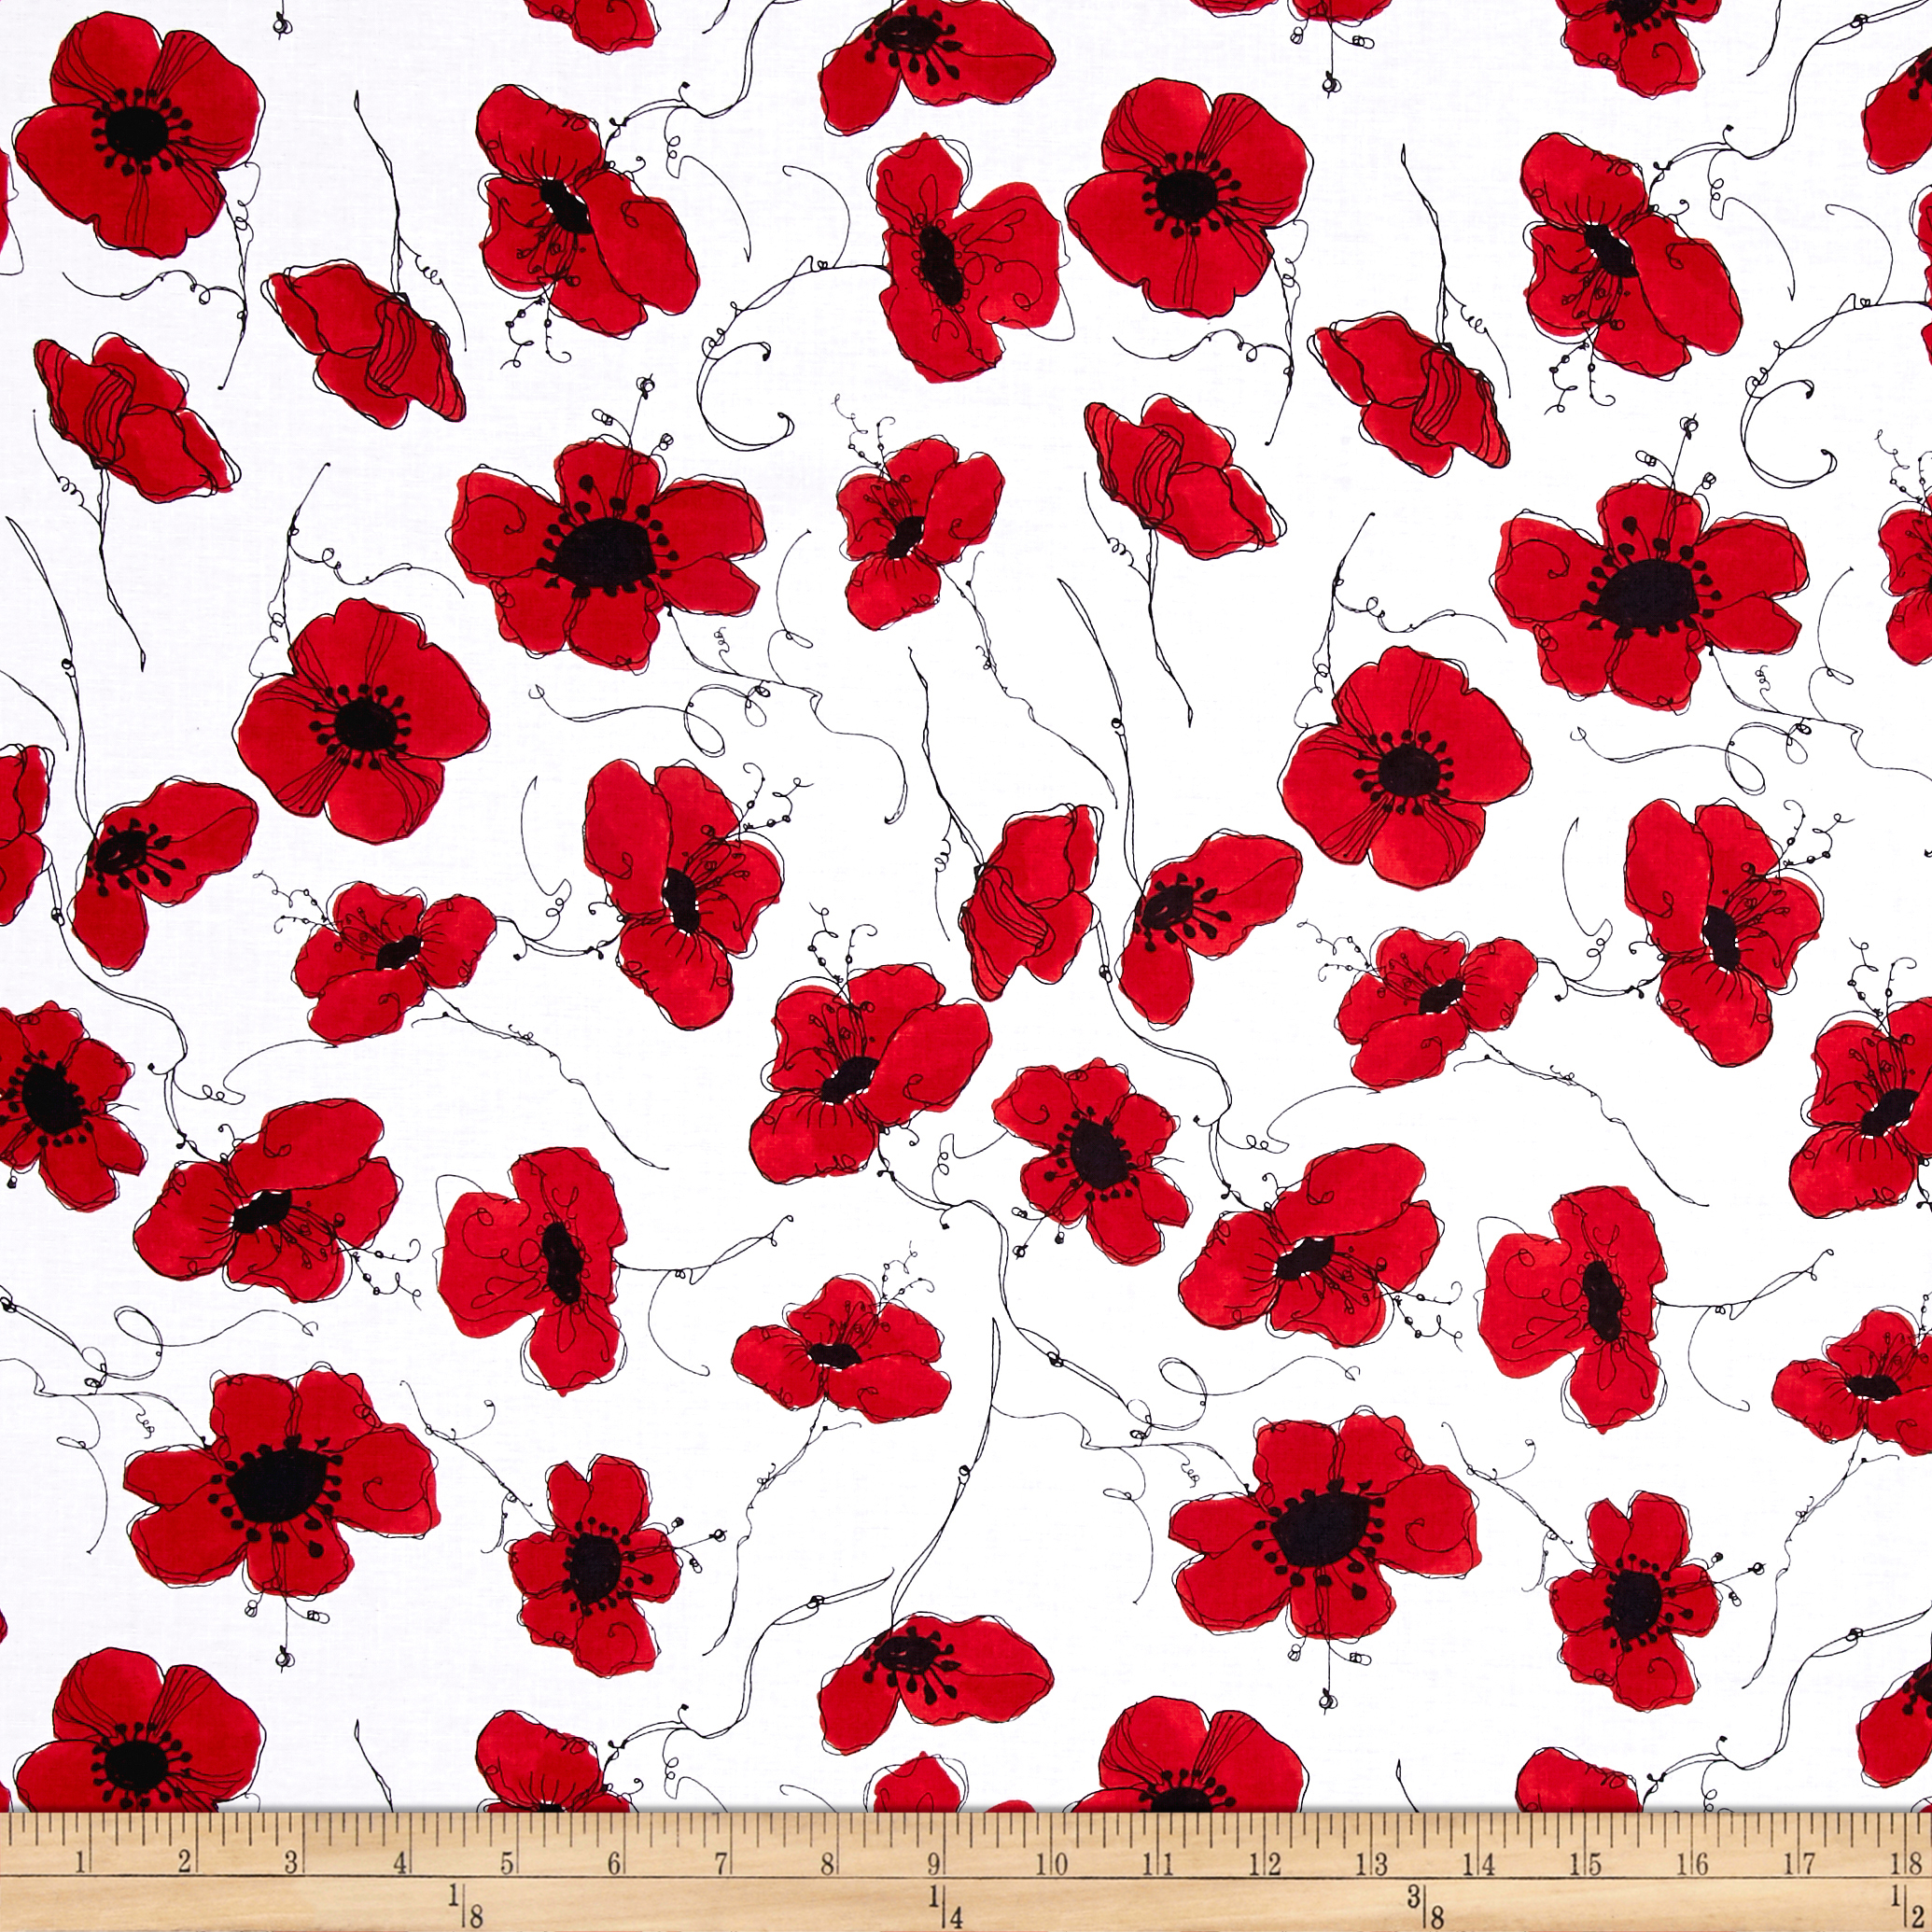 Loralie Designs Lady In Red Poppies White Fabric by E. E. Schenck in USA